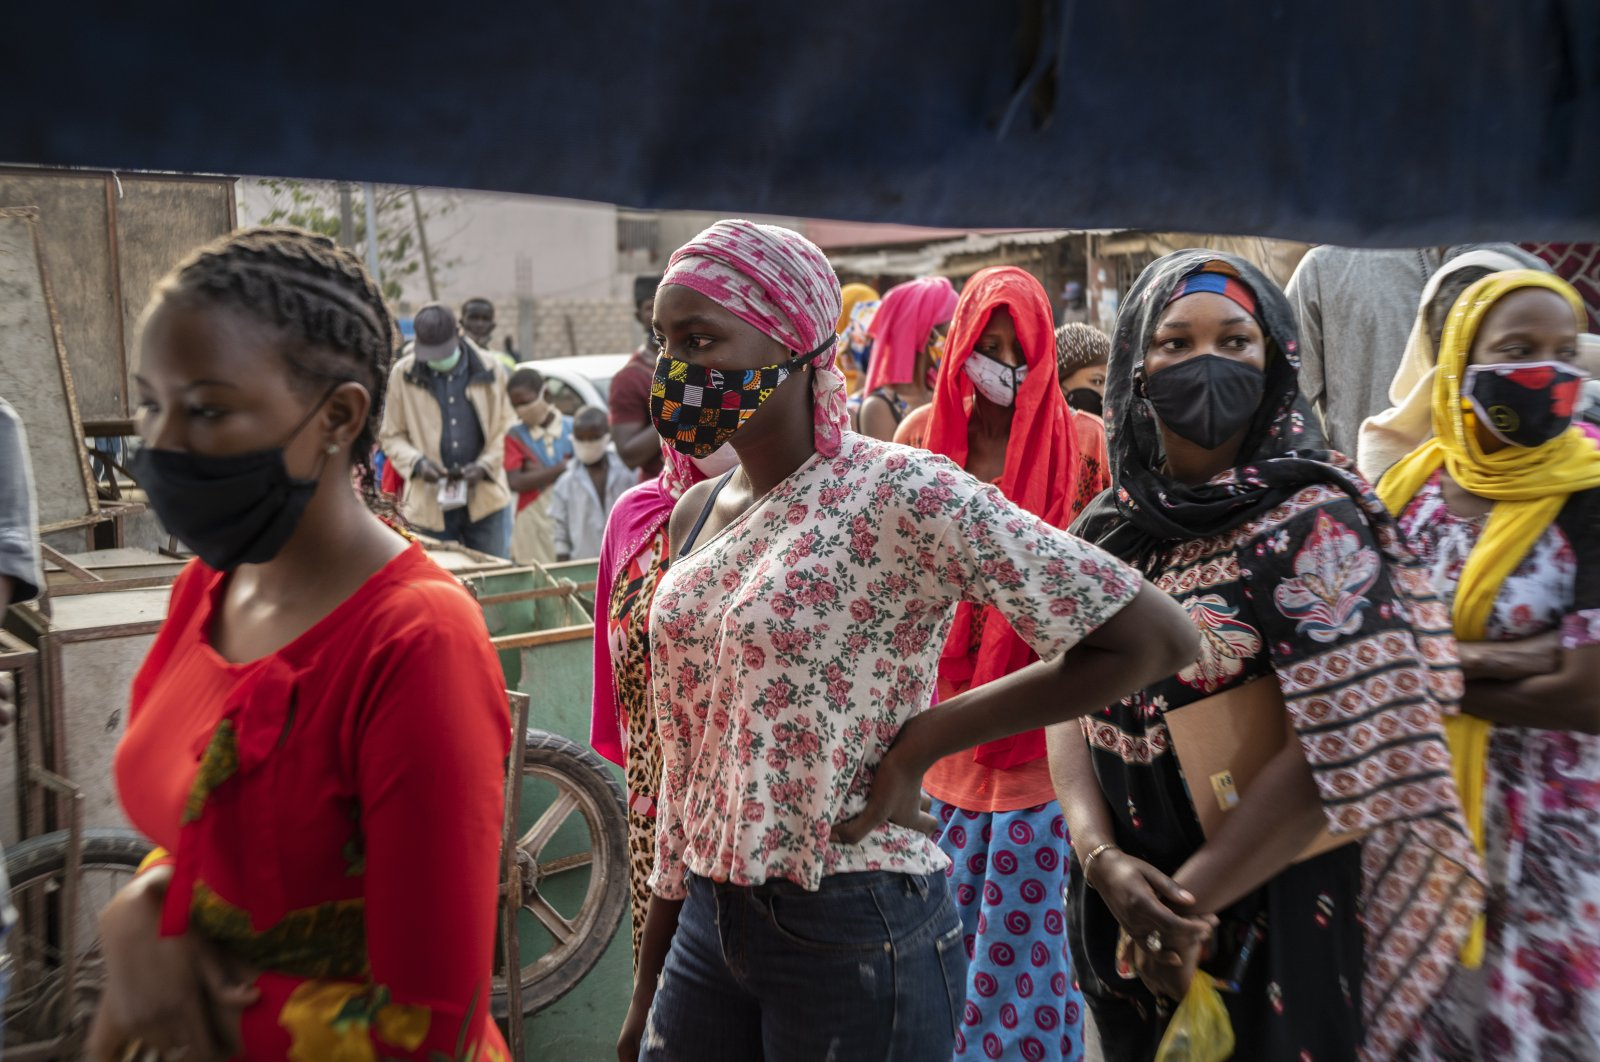 Women wear face masks as they queue to buy bread on the first day of the Muslim fasting month of Ramadan, in Dakar, Senegal, April 25, 2020. (AP Photo)